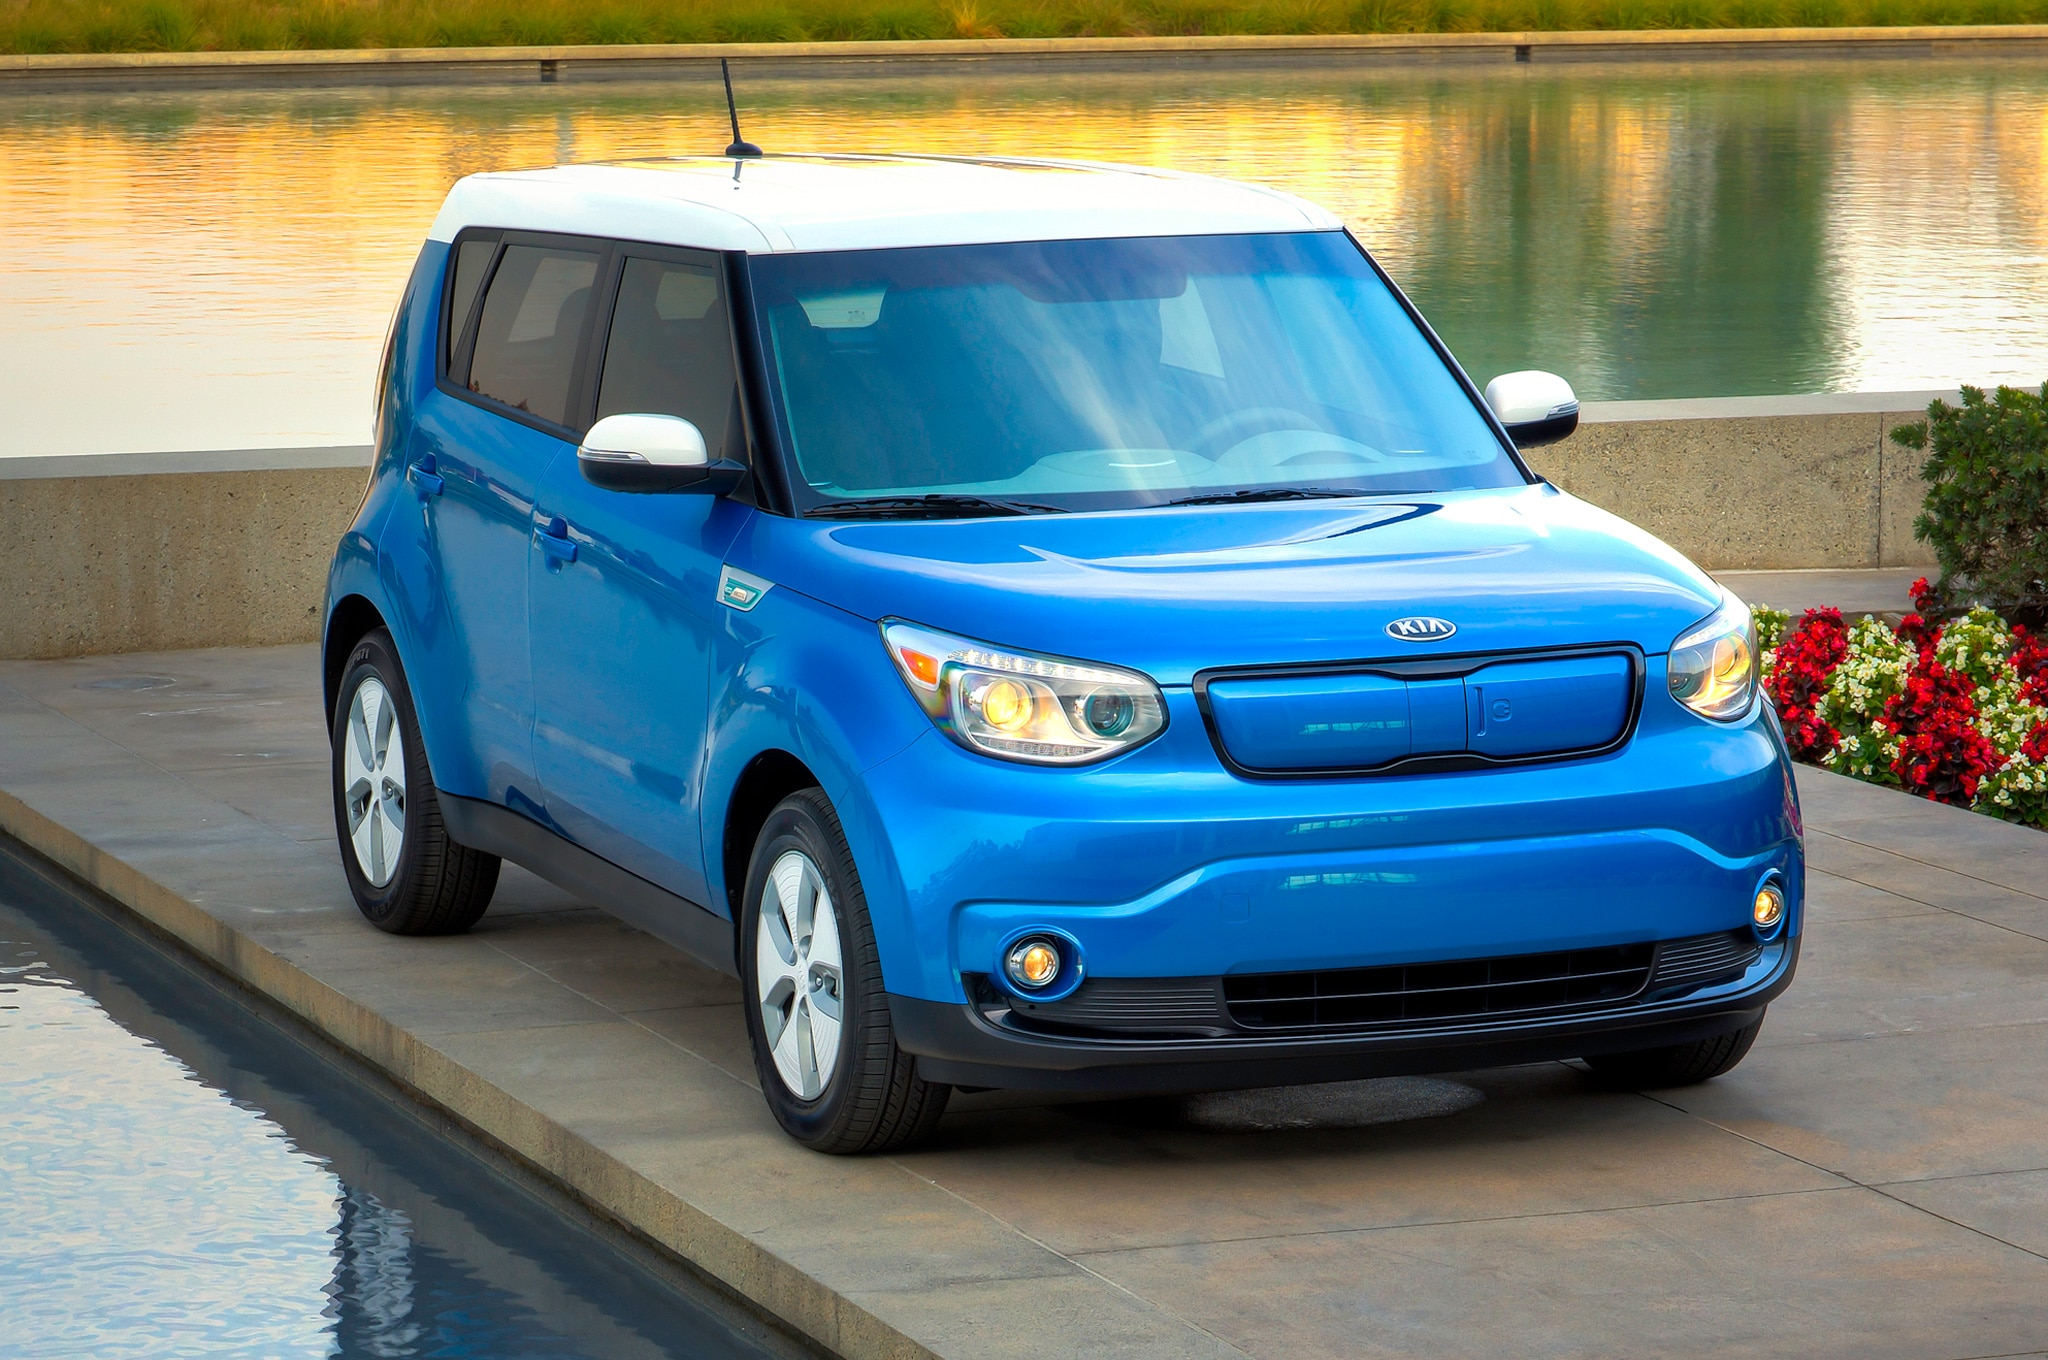 2015 kia soul ev revealed at 2014 chicago auto show. Black Bedroom Furniture Sets. Home Design Ideas